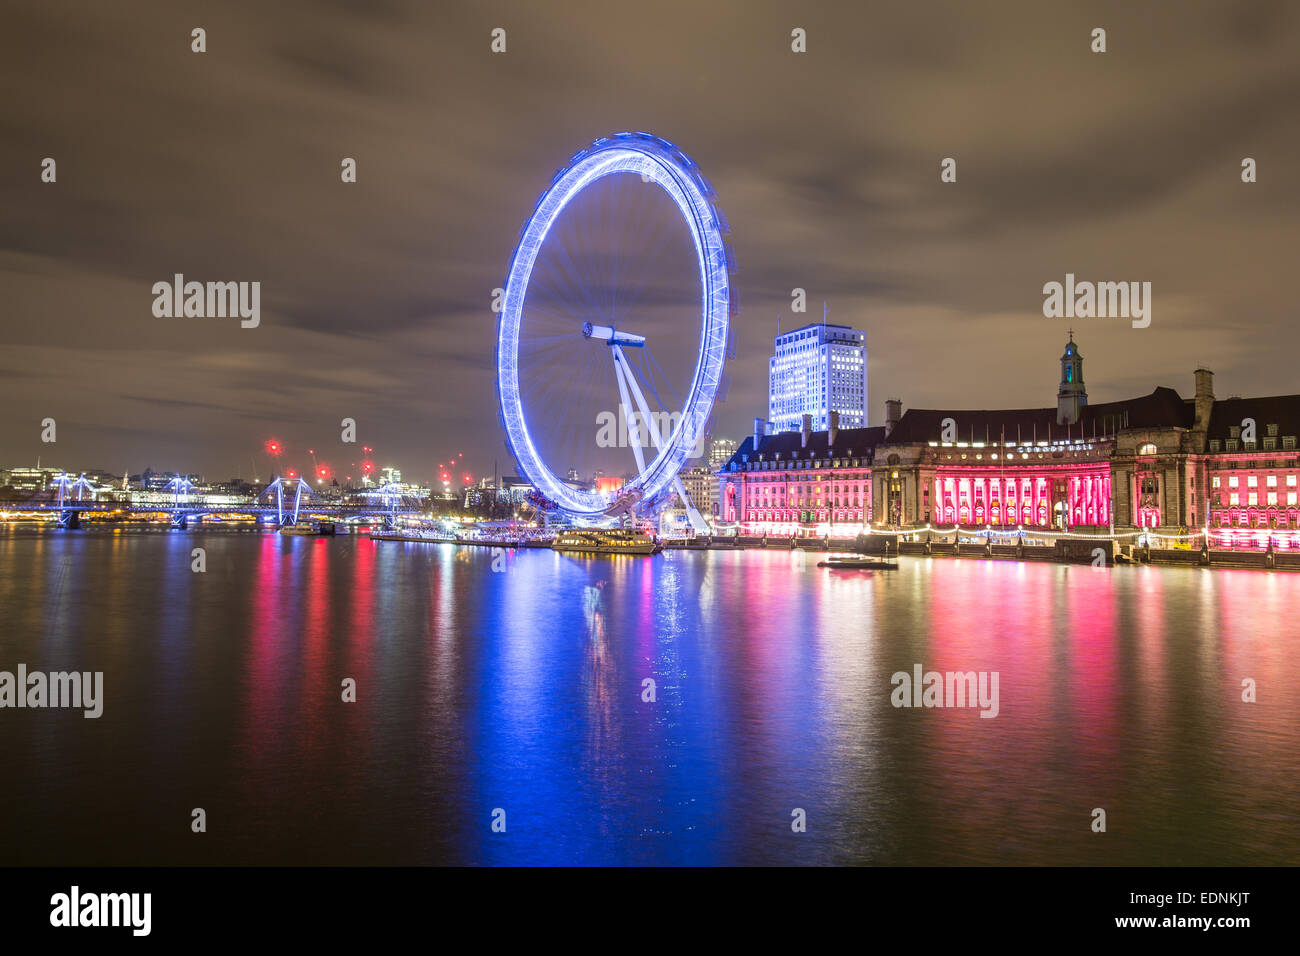 Photography by Roy Riley 0781 6547063 roy@royriley.co.uk  The London Eye at night with reflection and traffic streaks. - Stock Image